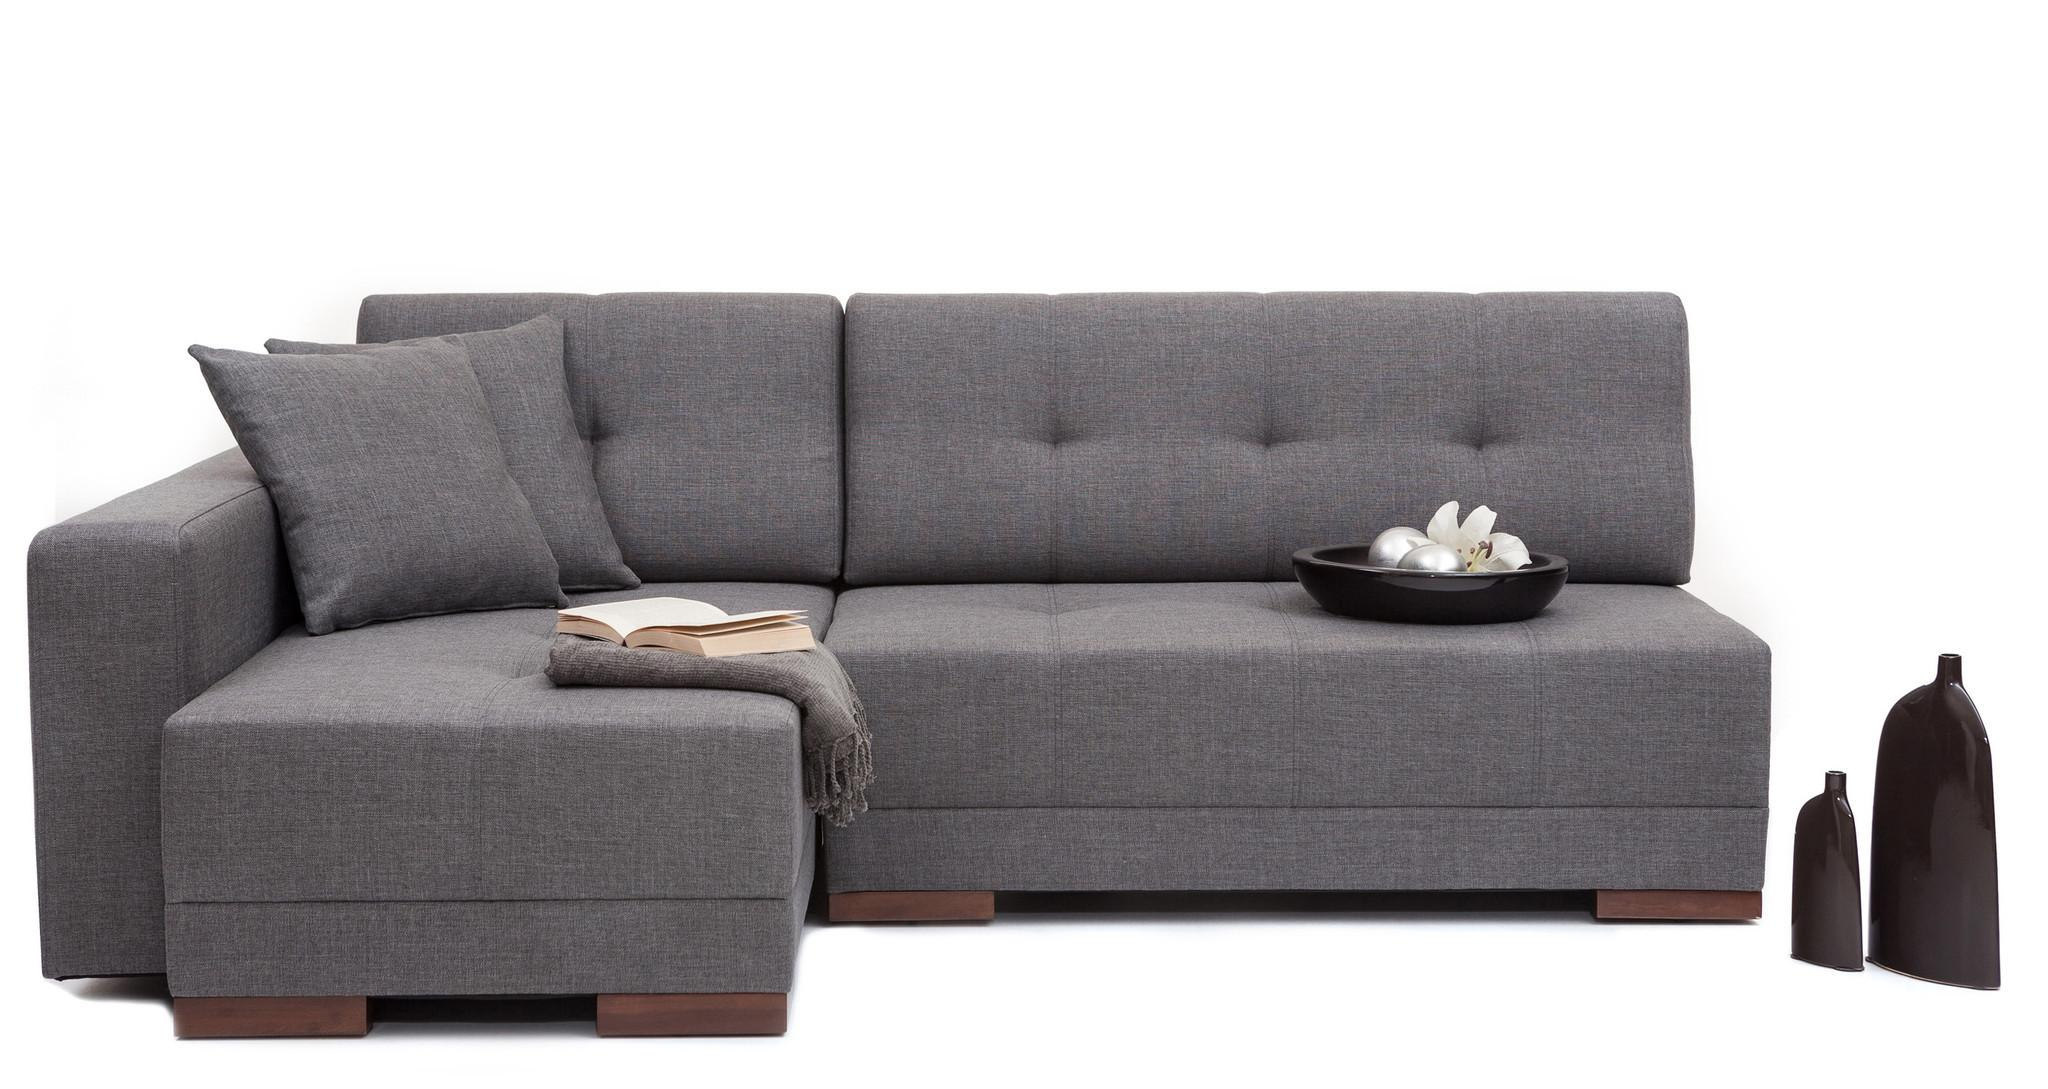 Convertible Sofa Bed Design Styles Pick